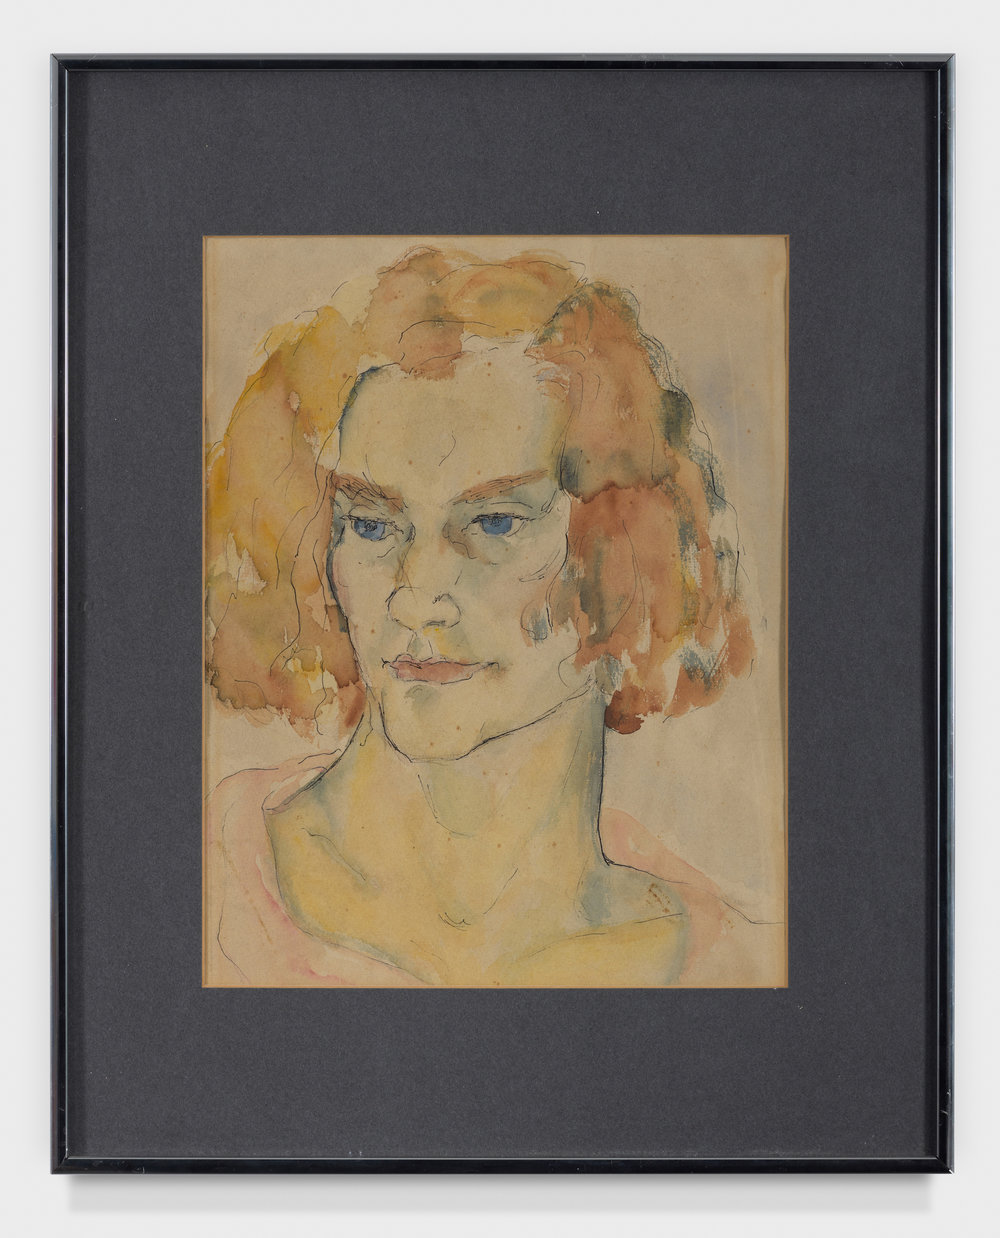 Self Portrait Watercolor,  c. 1940, Watercolor on paper, 14 × 11 inches (unframed); 20 1/4 × 16 1/4 inches (framed). From the collection of the late Emma N. Loeb.